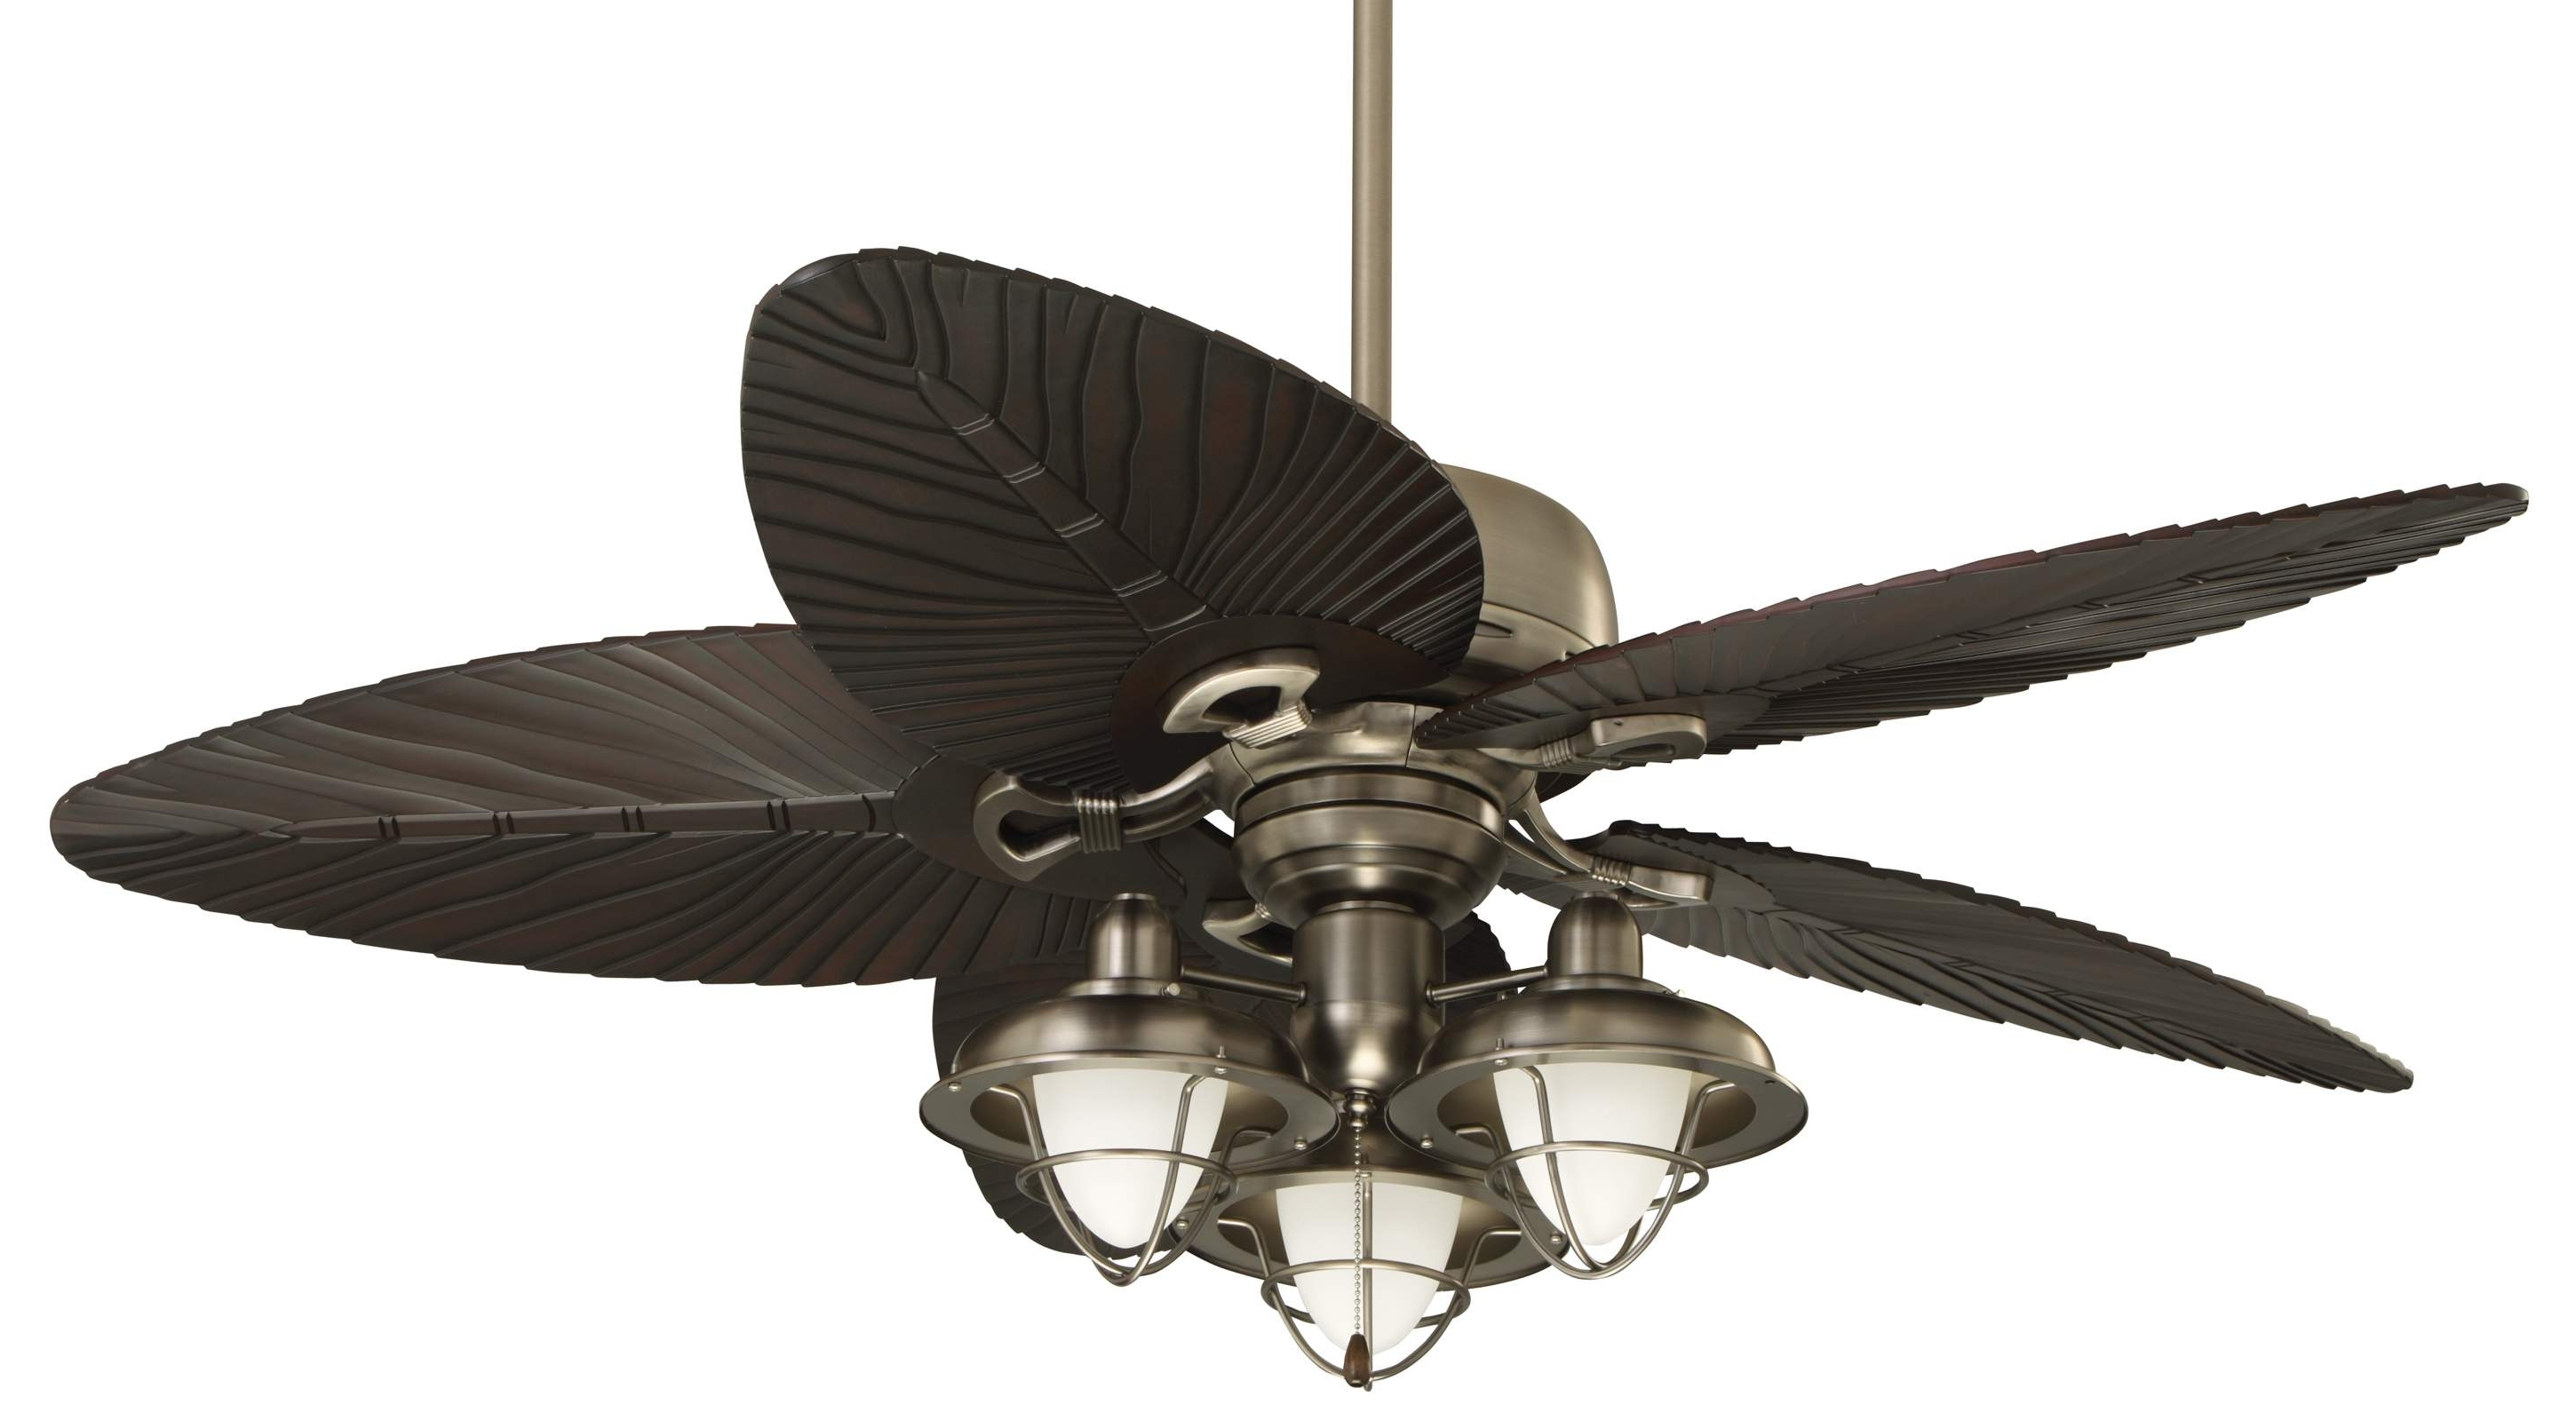 Tropical Outdoor Ceiling Fans – Pixball With Regard To Trendy Tropical Design Outdoor Ceiling Fans (View 7 of 20)